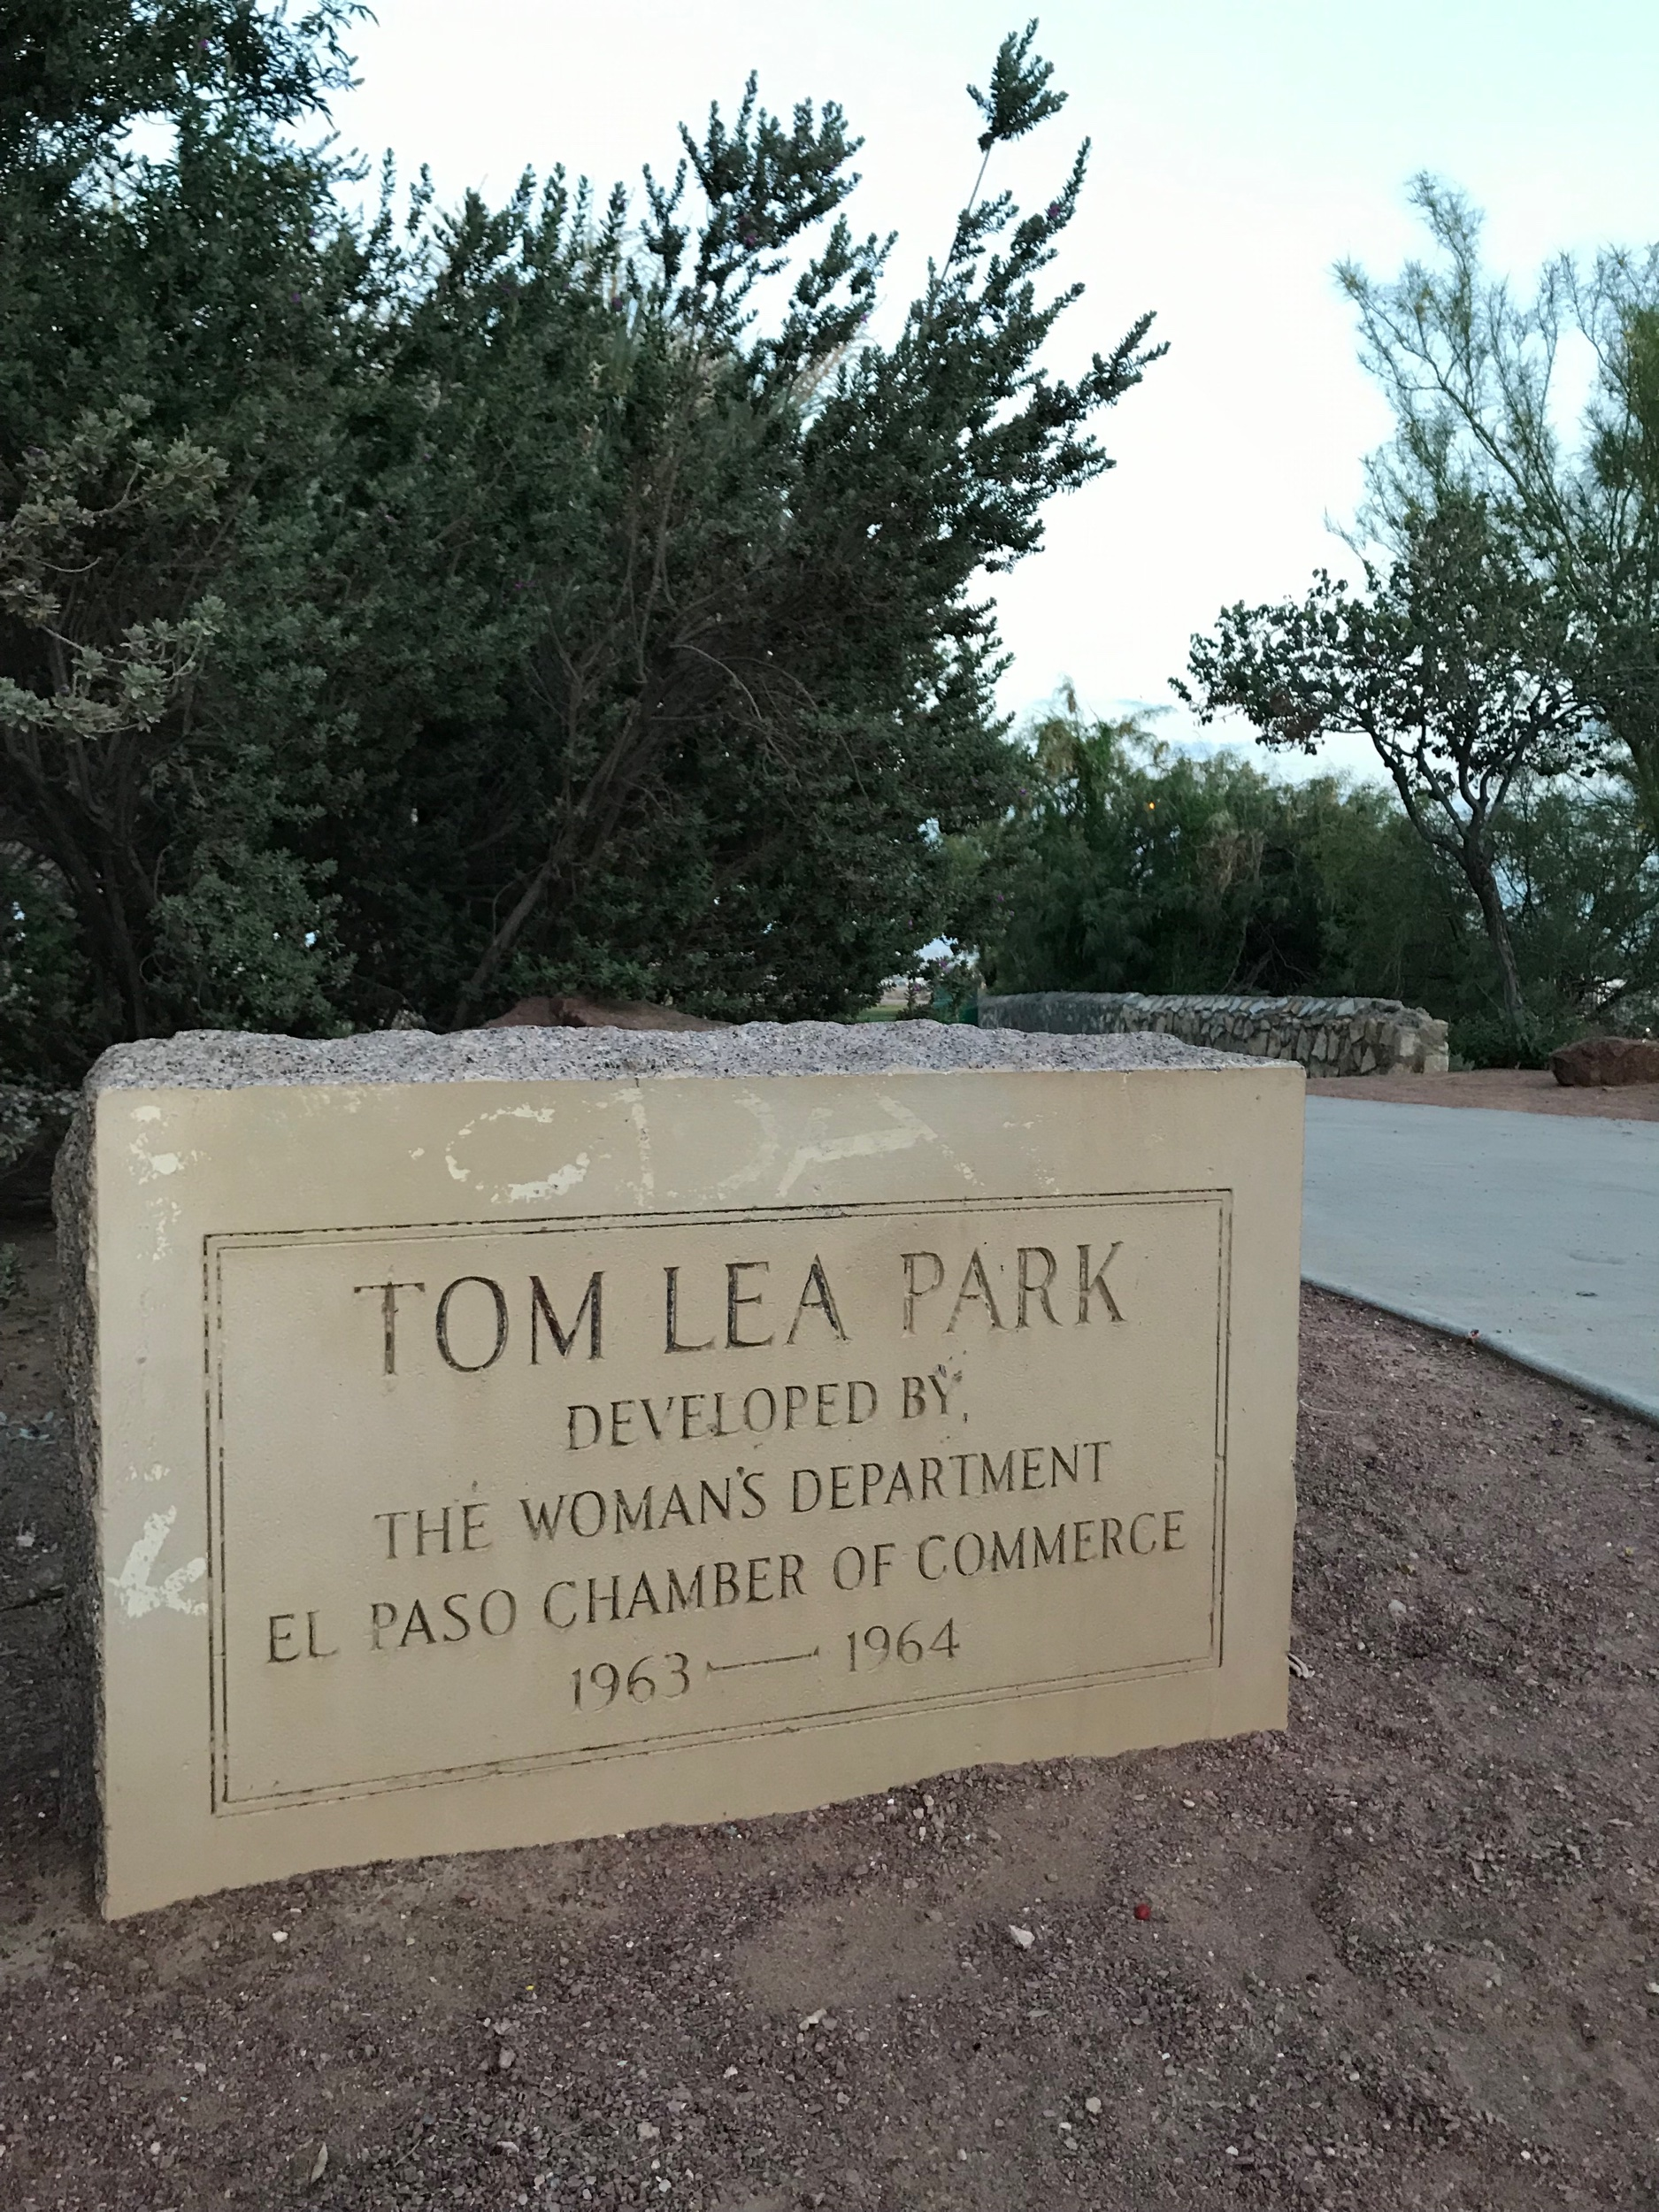 As you walk into the park, there's a cement placard with the park's name showing it was developed by the Woman's Department El Paso Chamber of Commerce (1963-64).